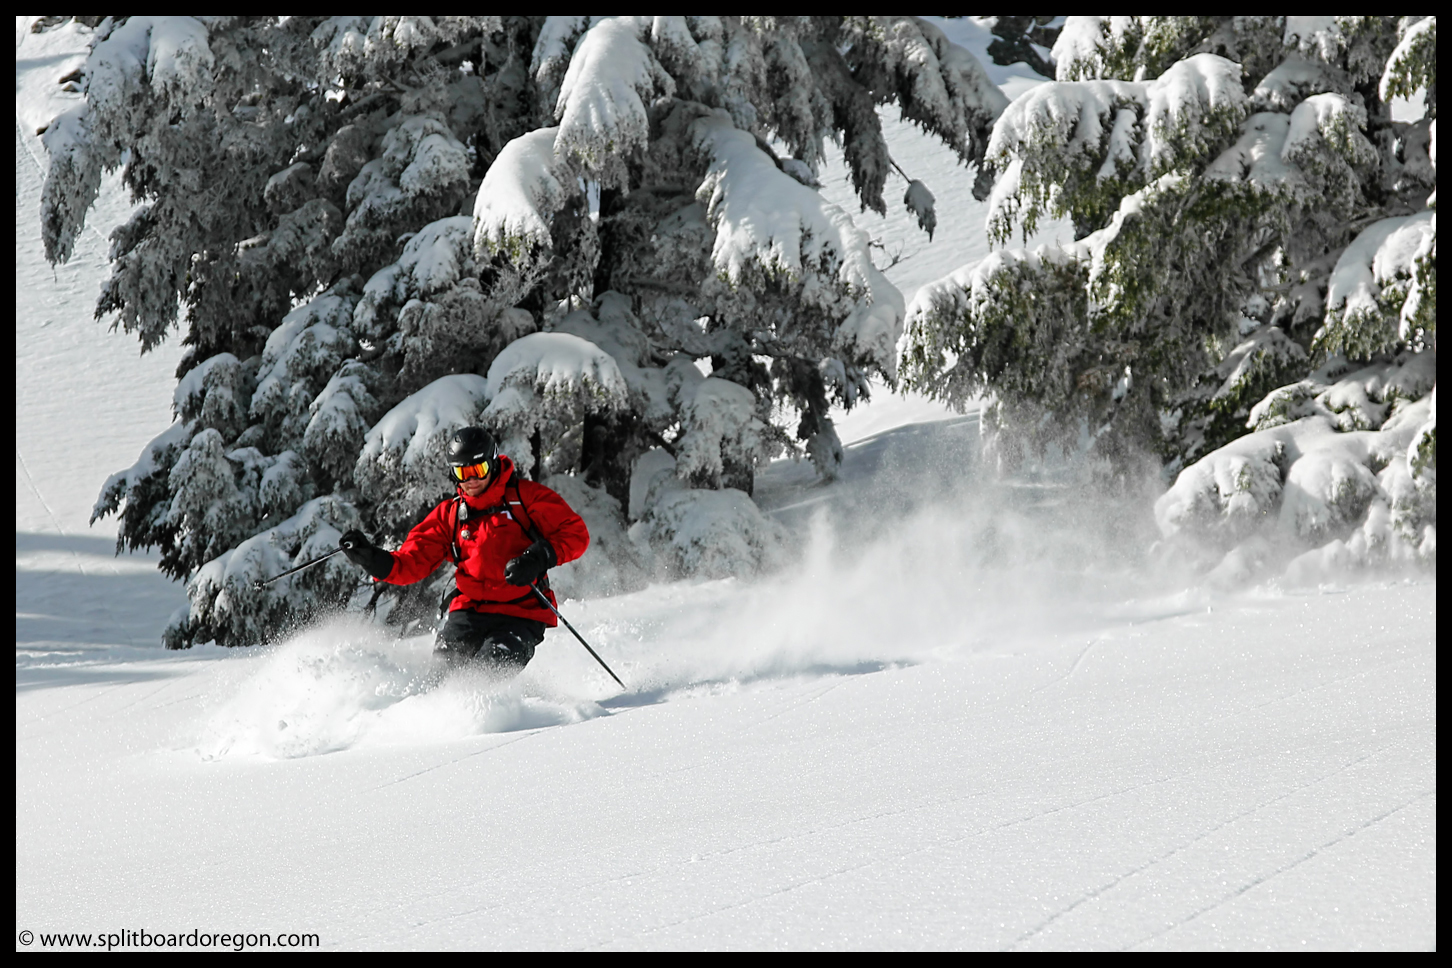 Raleigh skiing the fresh pow in the meadow